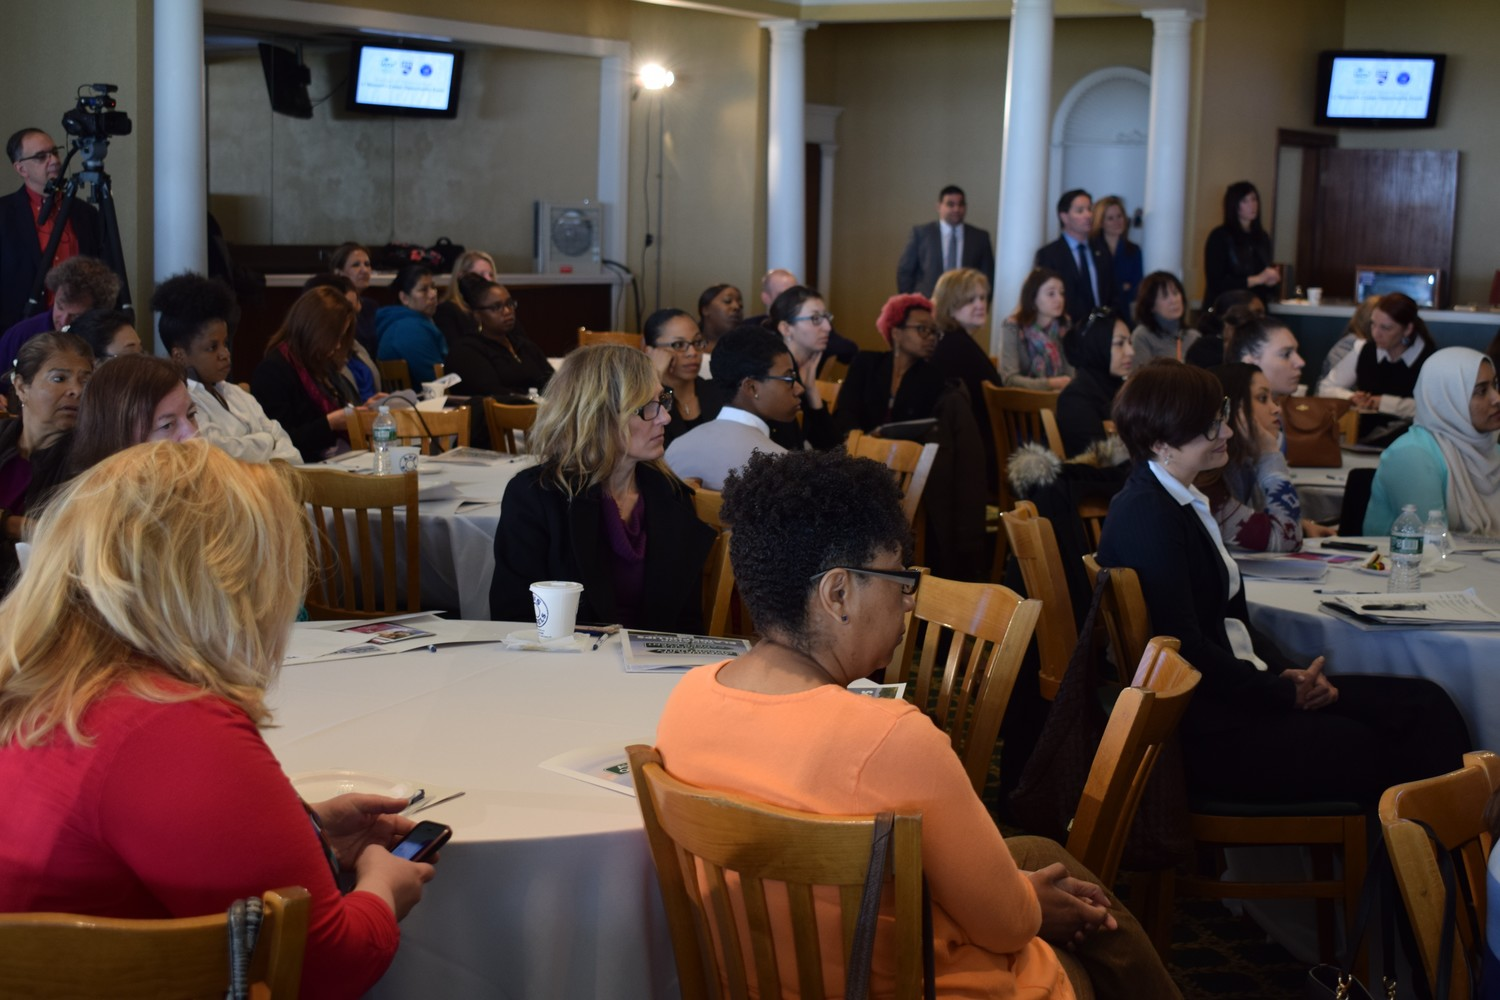 State Sen. Elaine Philips invited female leaders in Long Island's workforce to share their stories and tips for success.